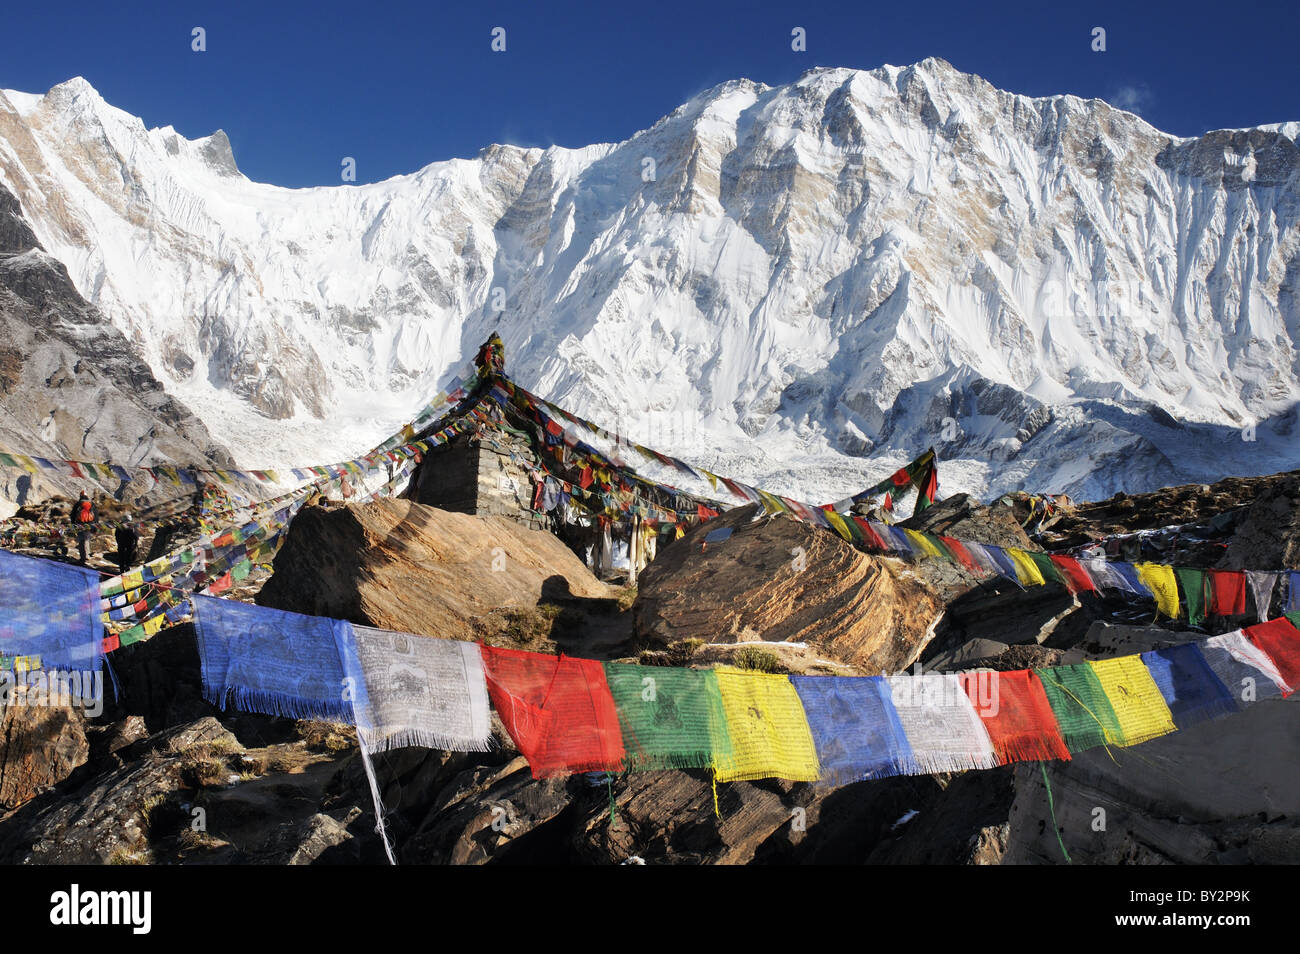 Prayer flags flying in front of the South Face of Annapurna - Stock Image